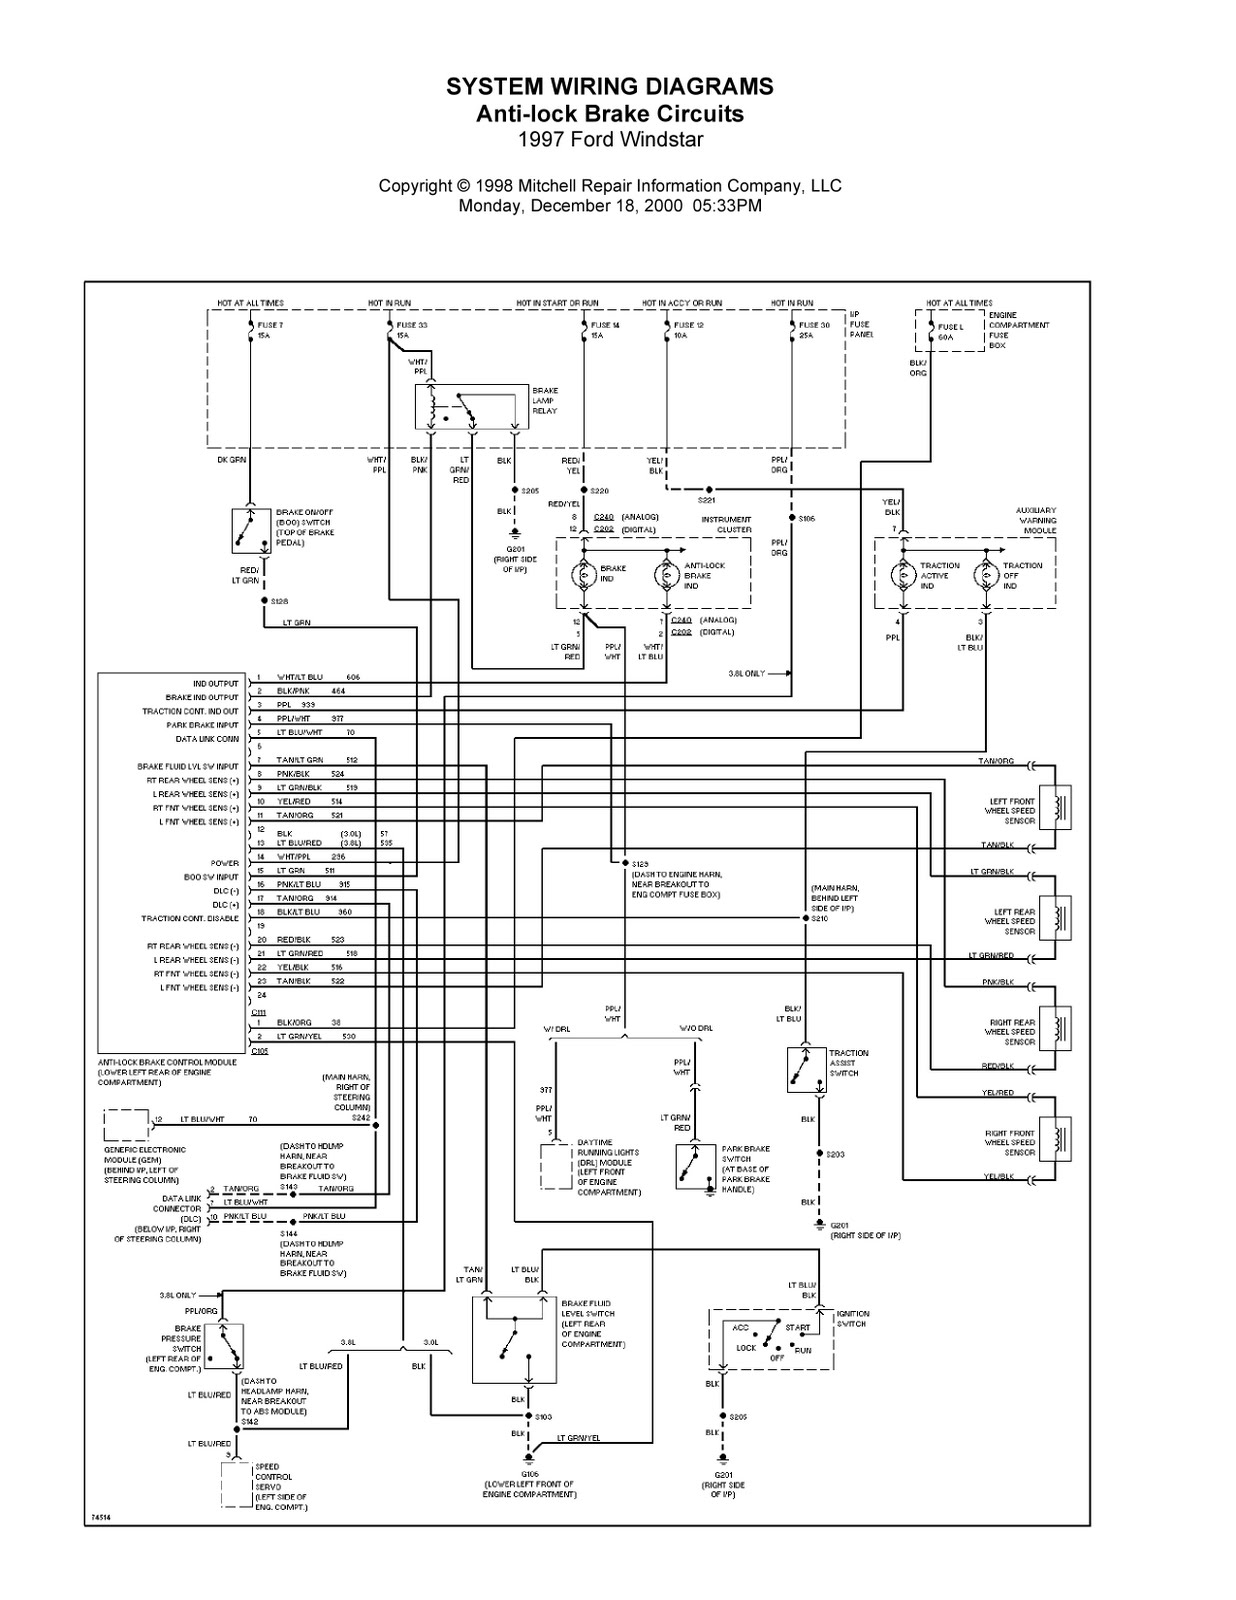 similiar 2000 ford windstar wiring diagram keywords 1999 ford windstar wiring diagram 2000 ford windstar wiring diagram in